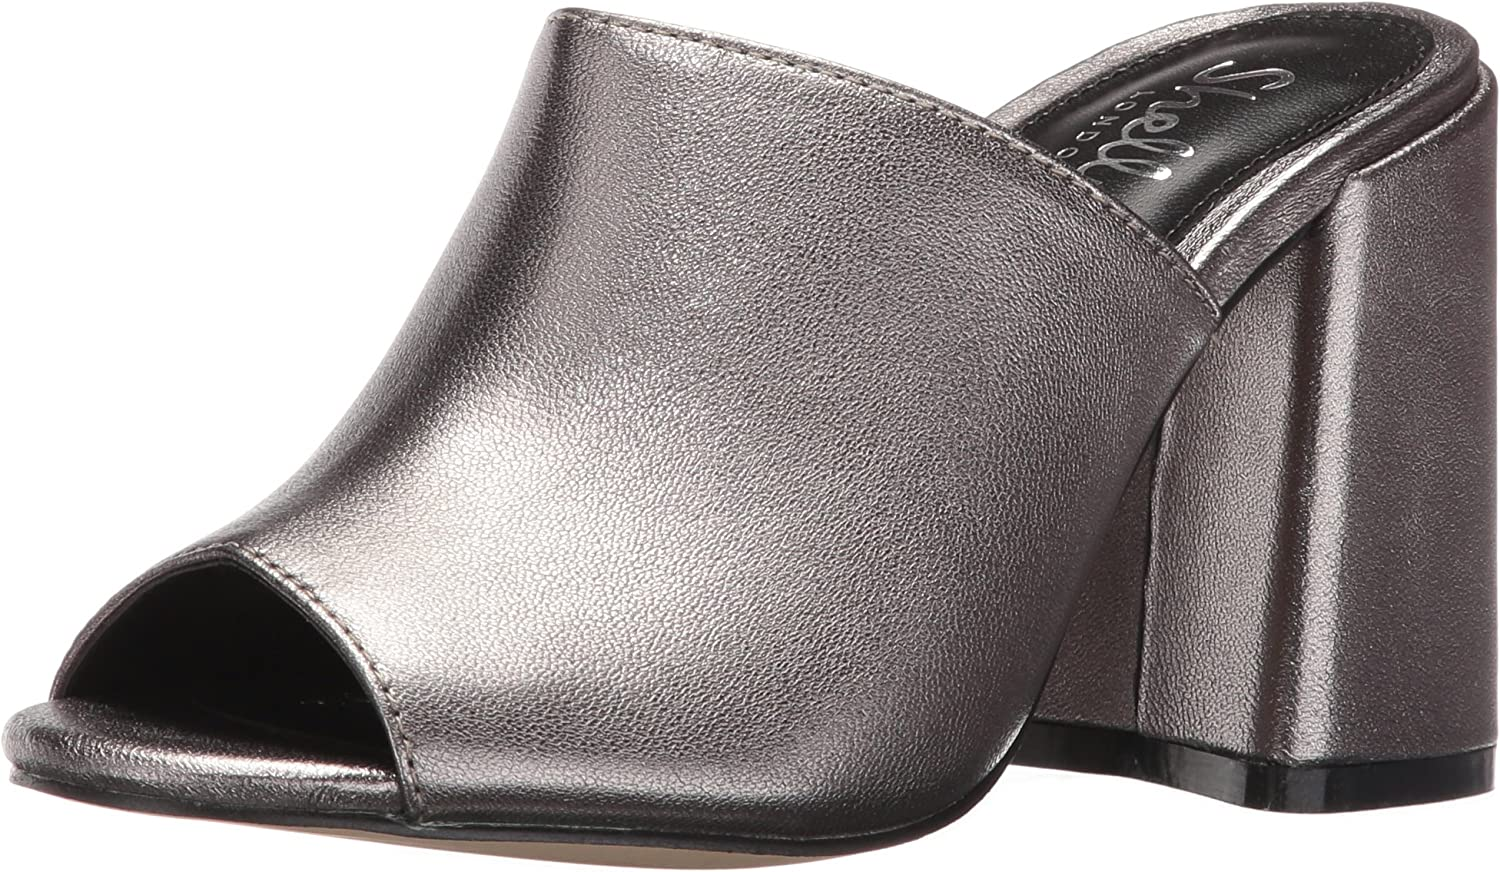 Shellys London Womens Calico Mule